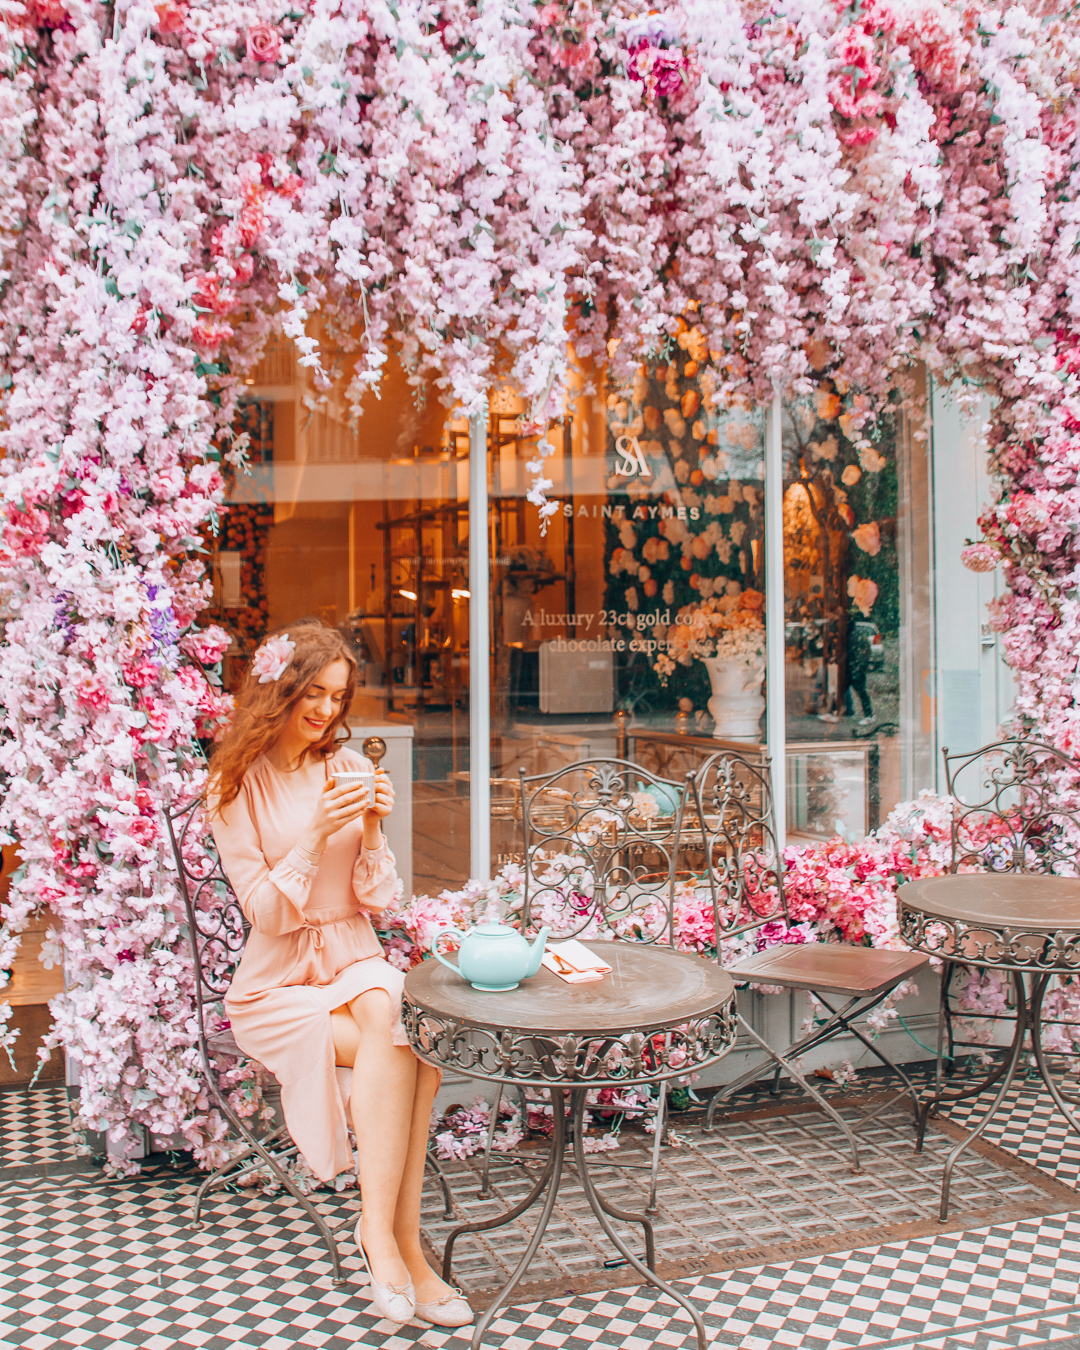 Instagrammable pink flowers at the terrace of Saint Aymes in London